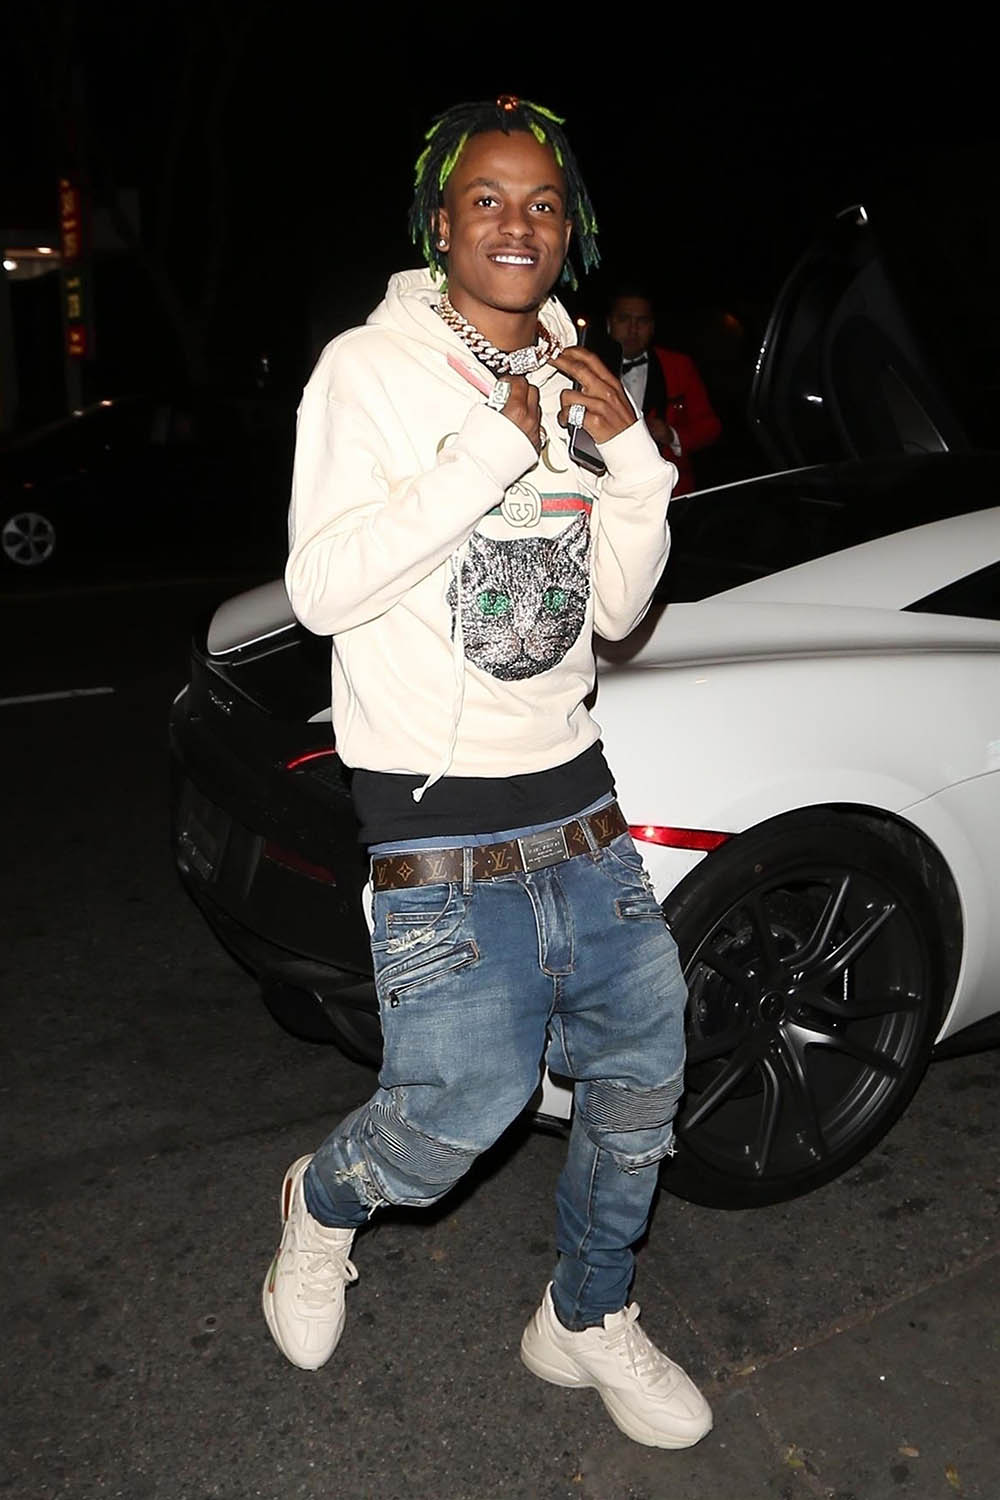 Rich the Kid  Quavo arrive for dinner at Delilah  Sandra Rose